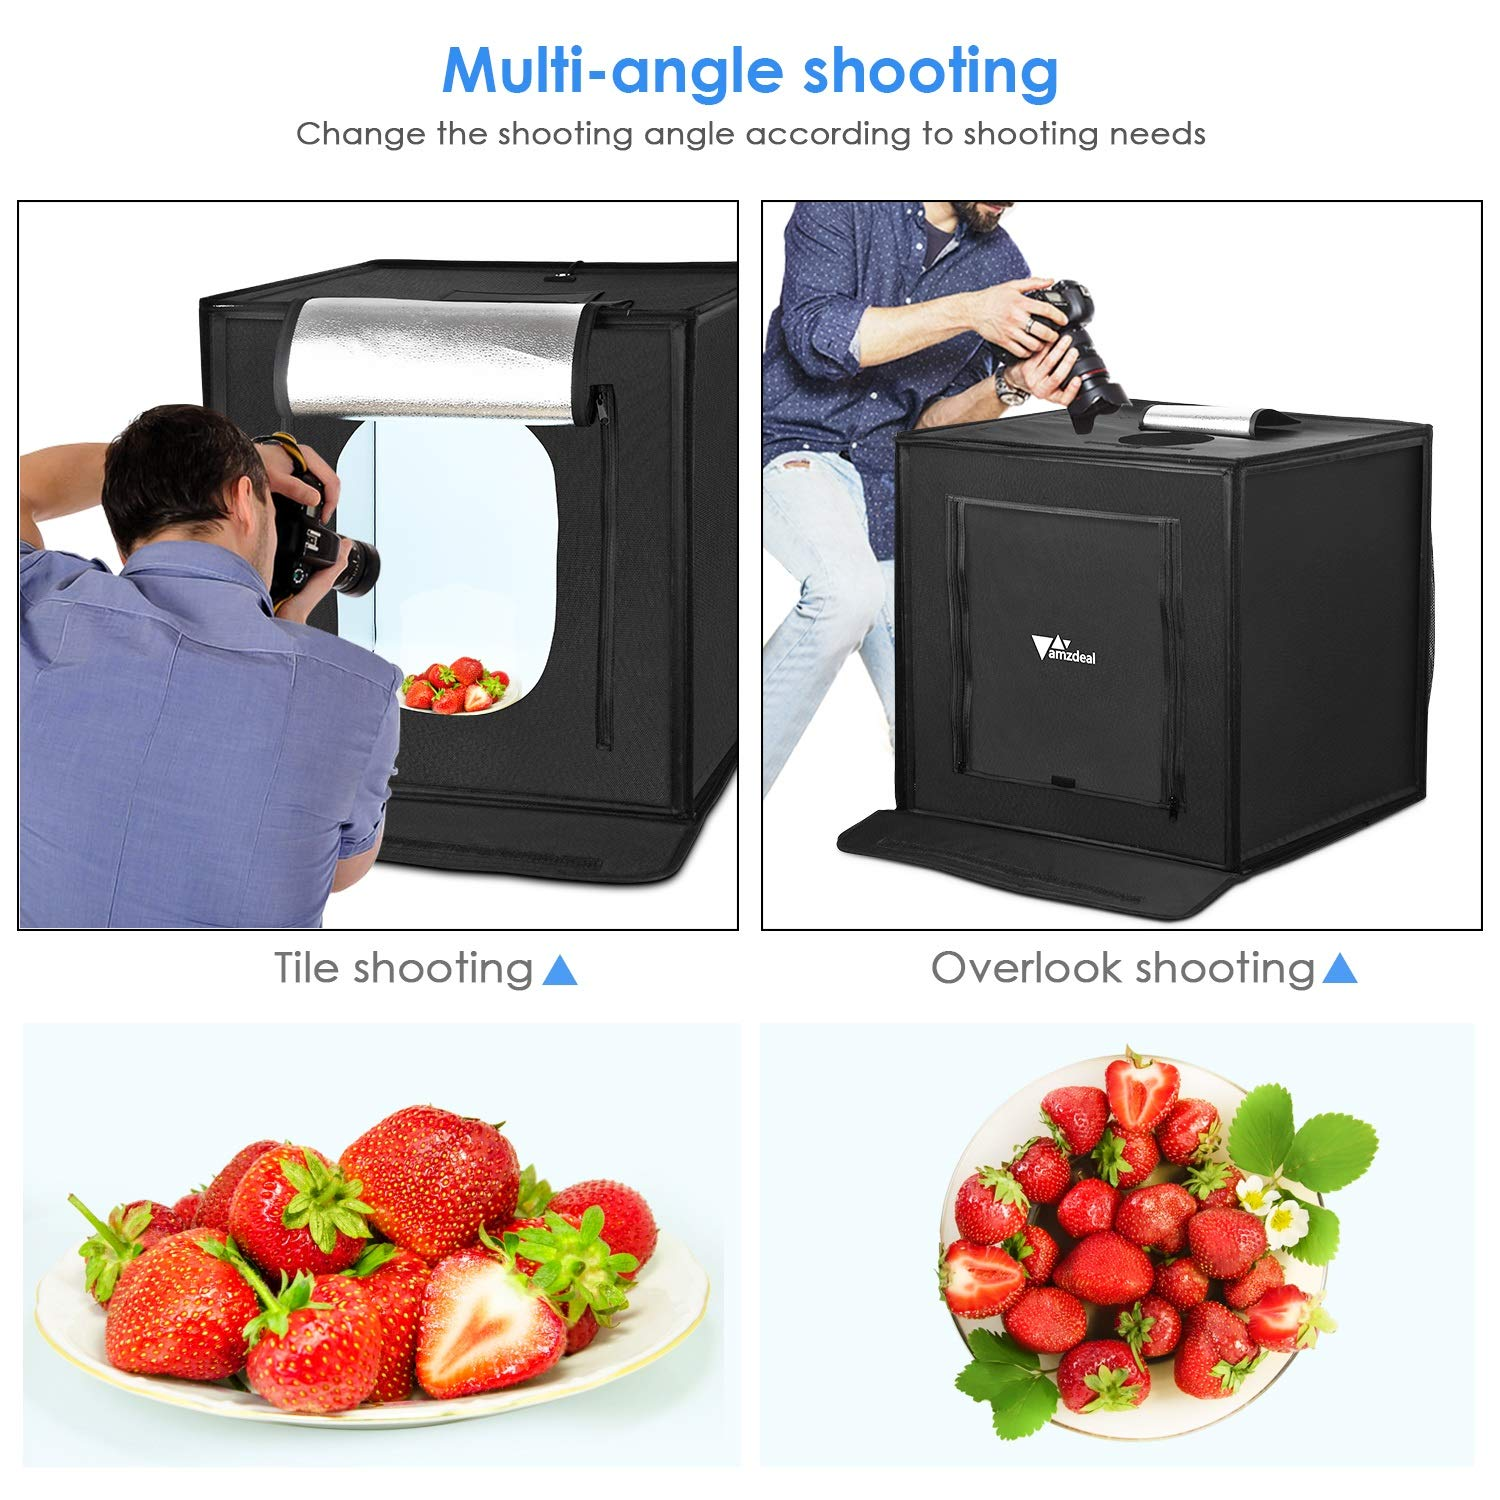 Blue//White//Black//Orange Amzdeal Foldable Photo Studio 24x24 Inch Light Box with 4 LED Strips 5000LM 5500K,Photography Cube Shooting Tent,with Velcro Design,4 Backdrops -Upgraded Version